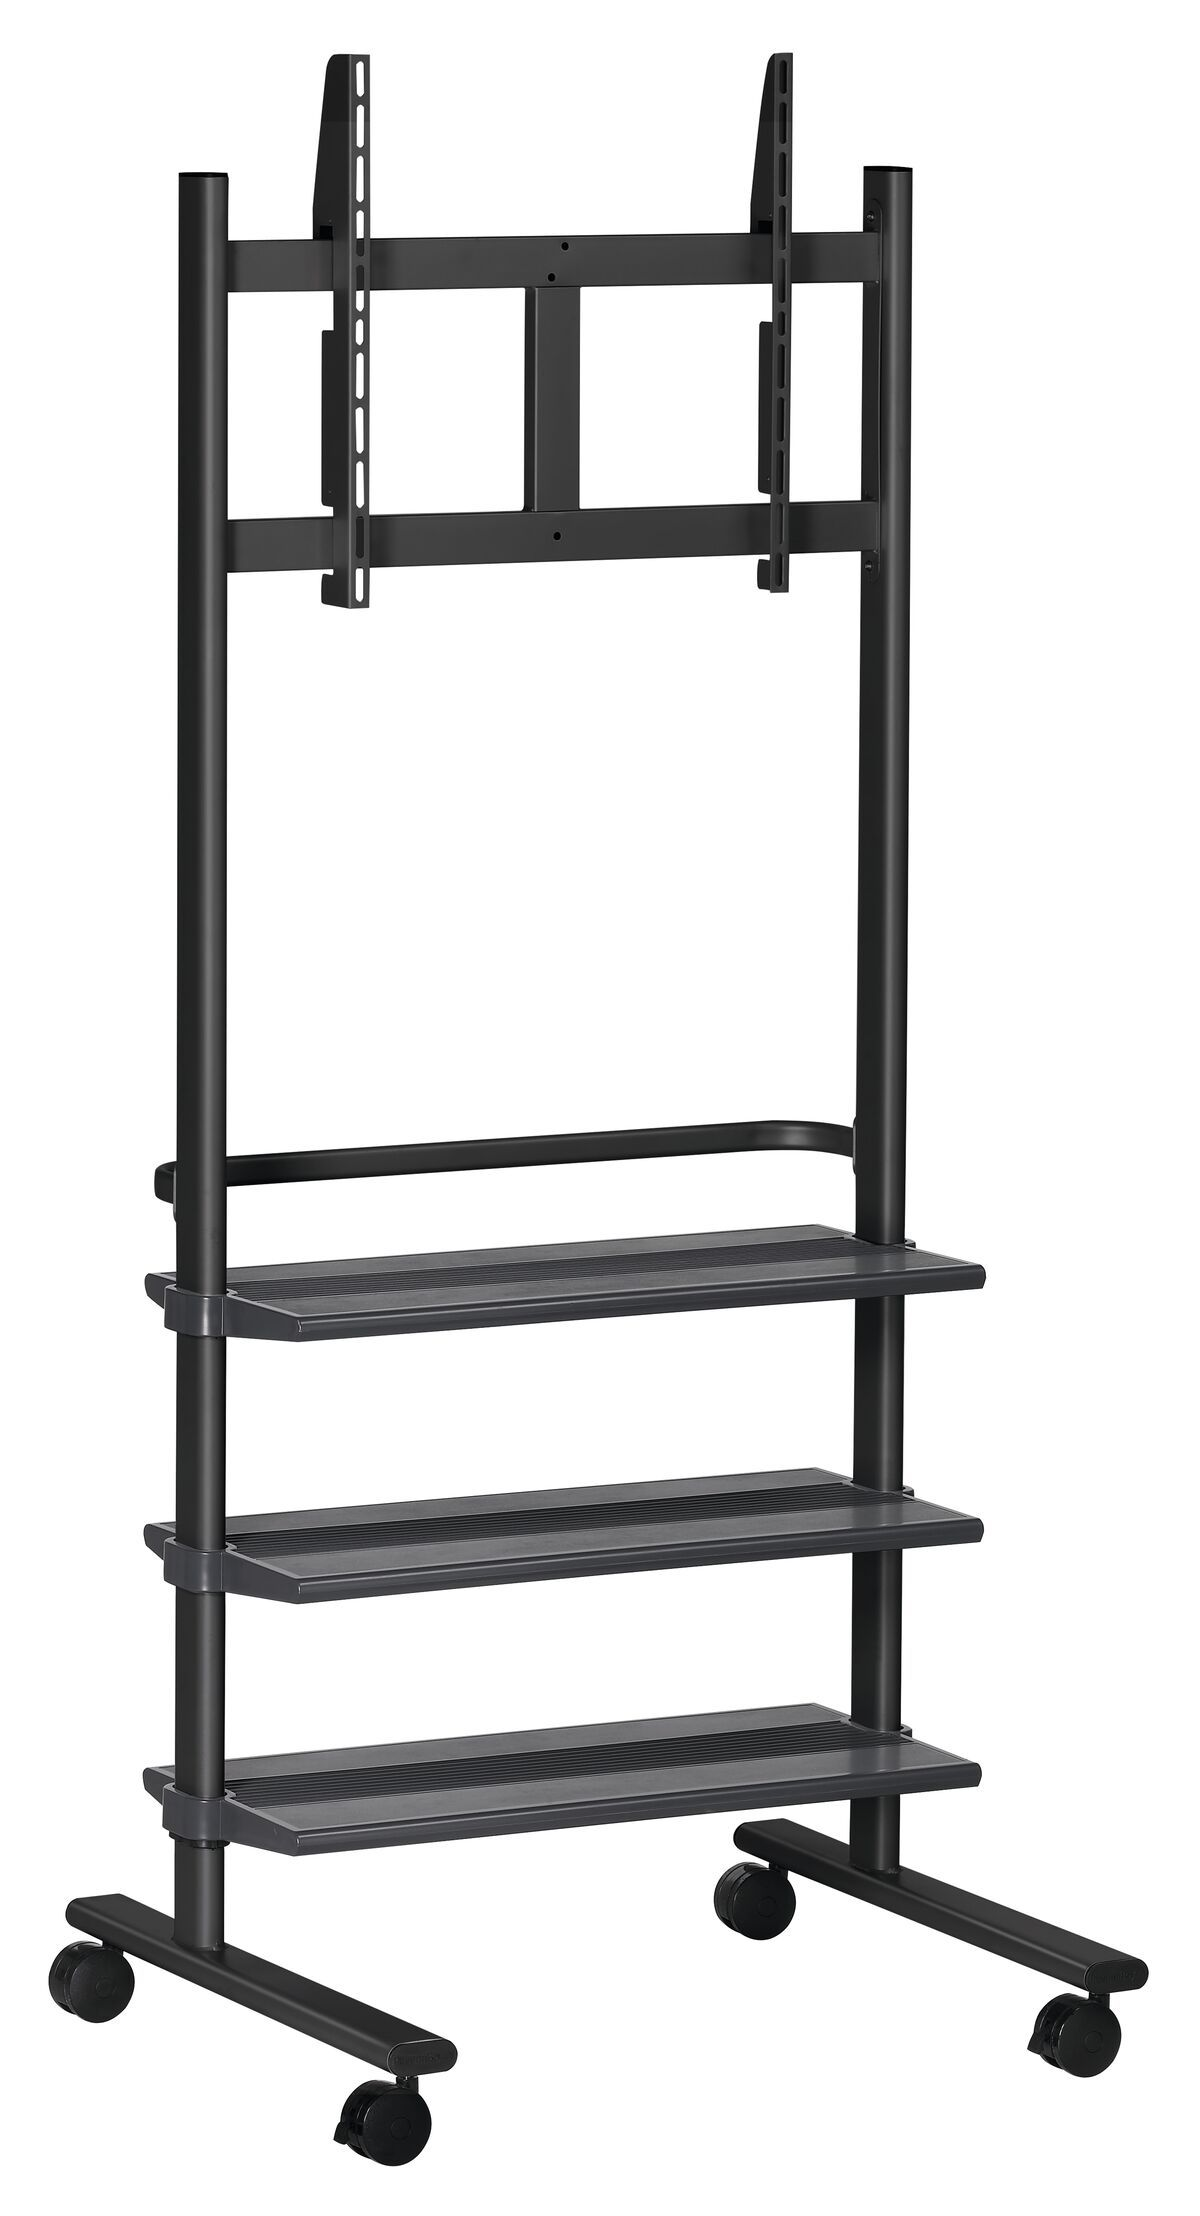 Vogel's PB 175 Display trolley black - Product